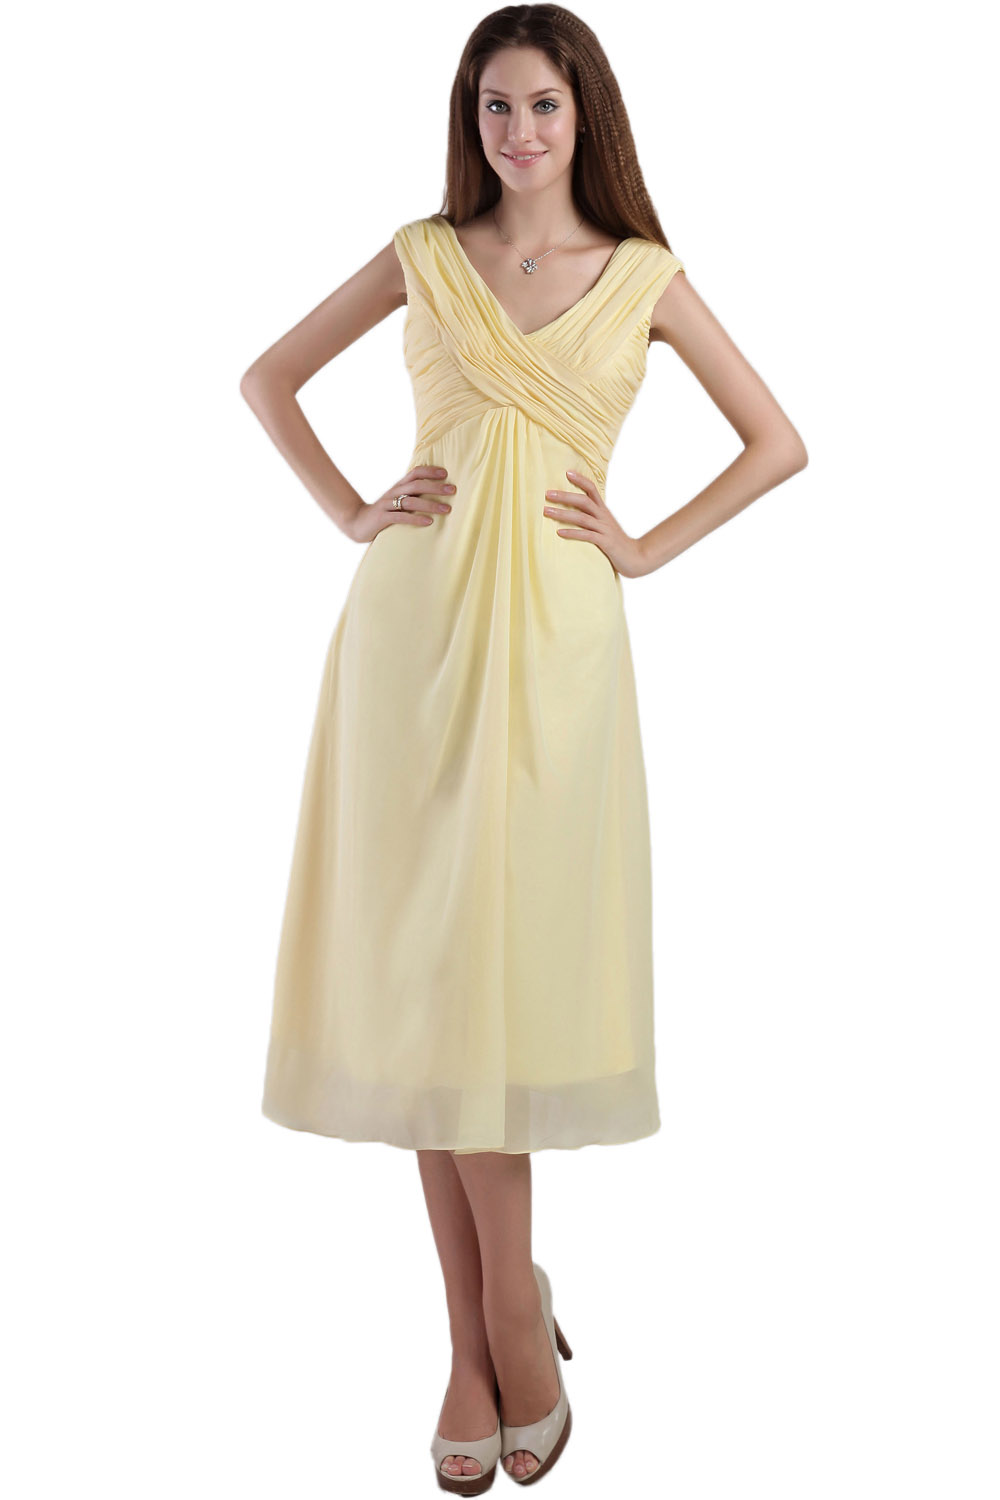 Sheath/Column One Shoulder Knee-length Satin Prom Dress